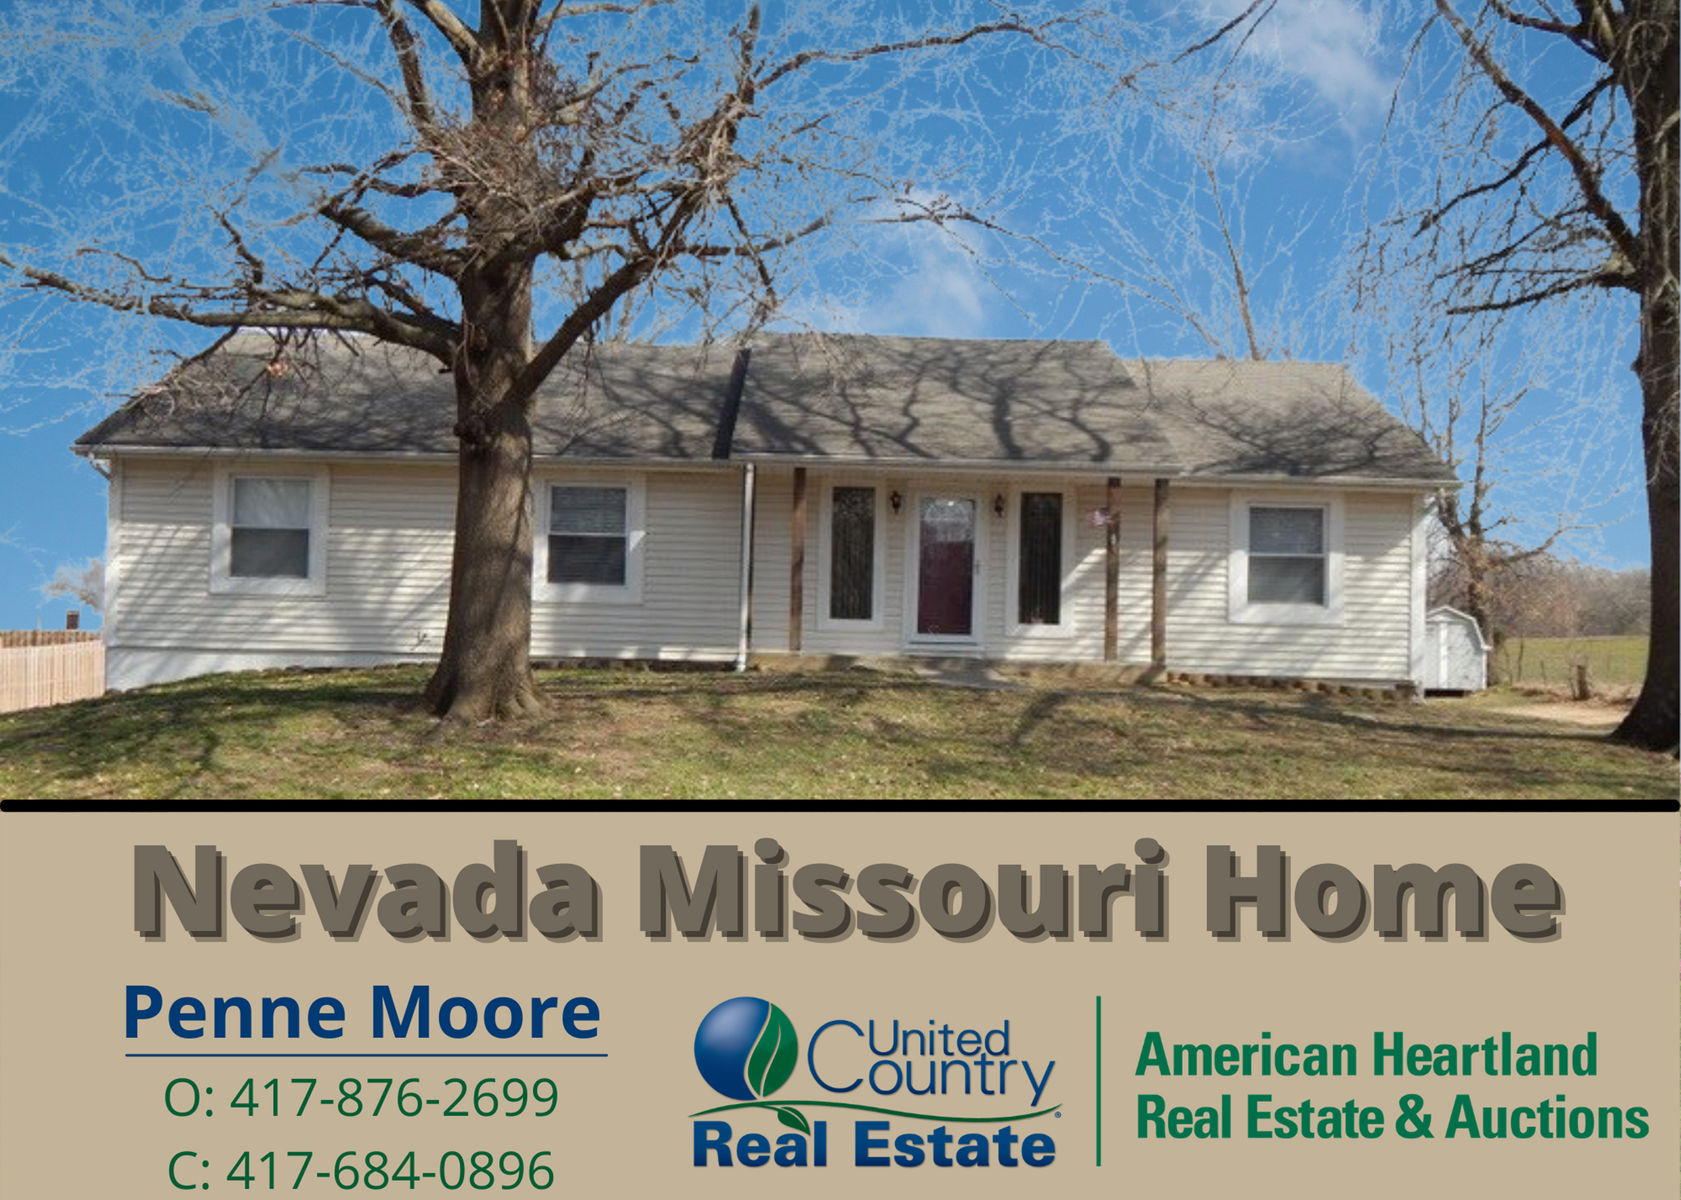 Country Home For Sale In Nevada Missouri